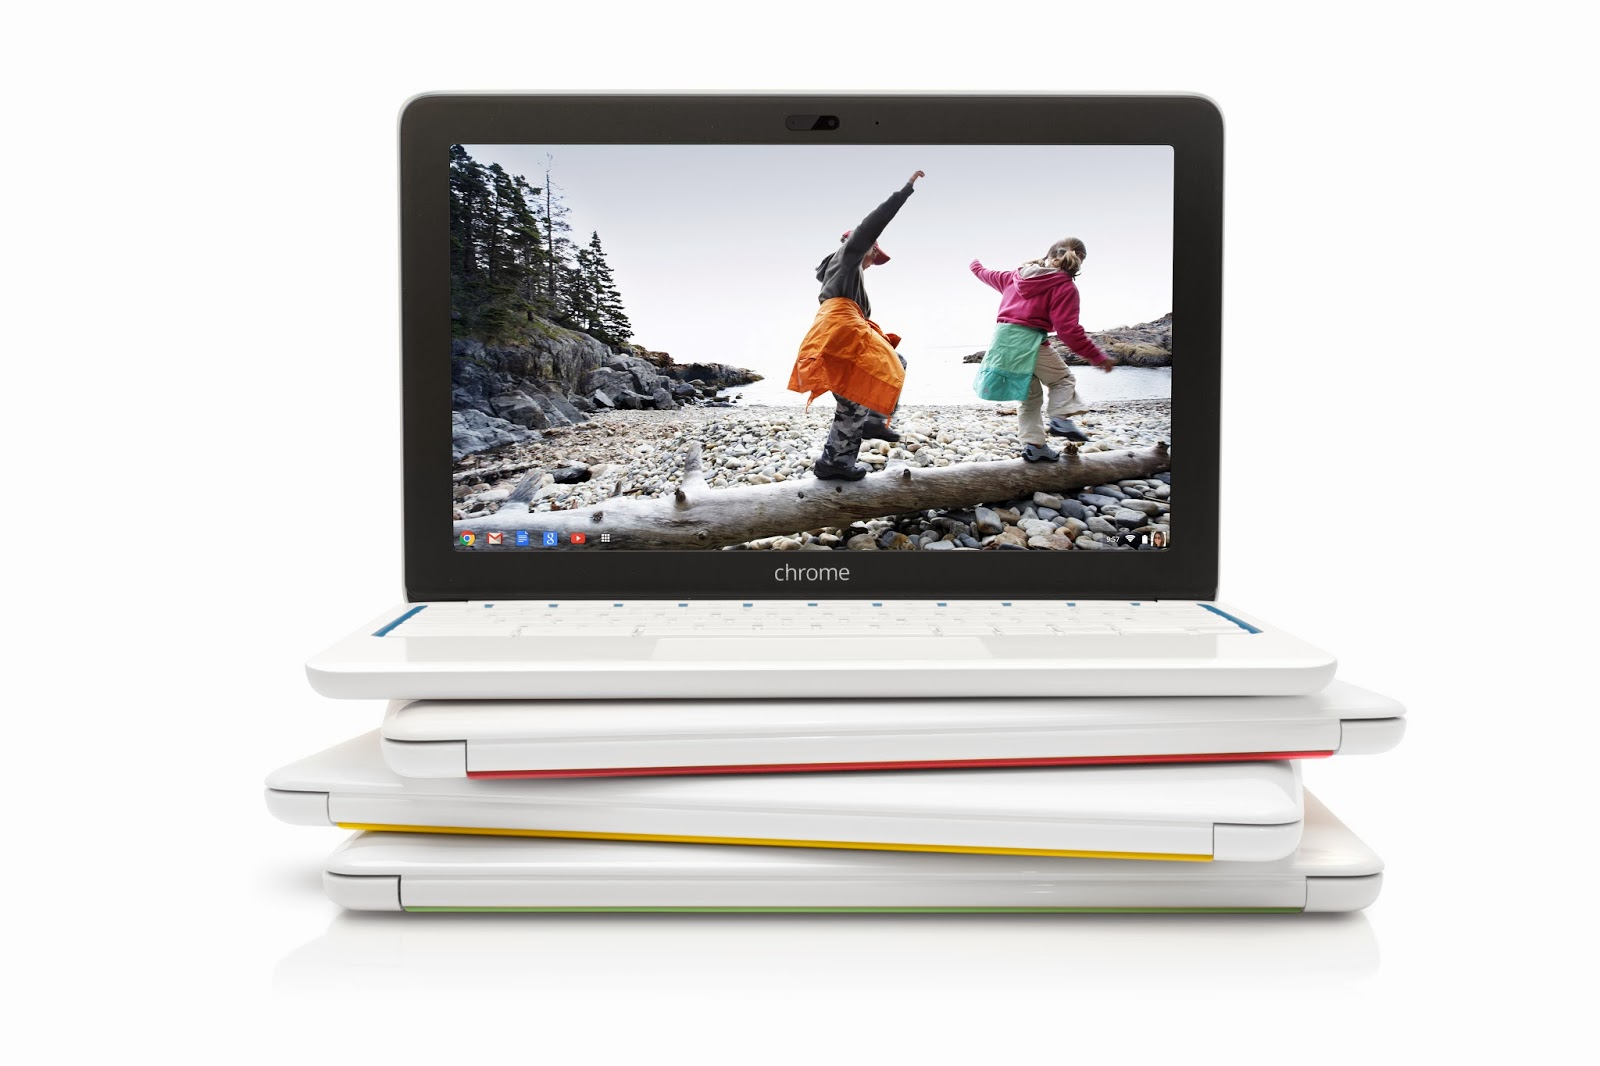 8 HP Chromebook 11 Color Stack1 The HP Chromebook 11 is a 2.3lb Chrome OS laptop with Micro USB charging for $279.99